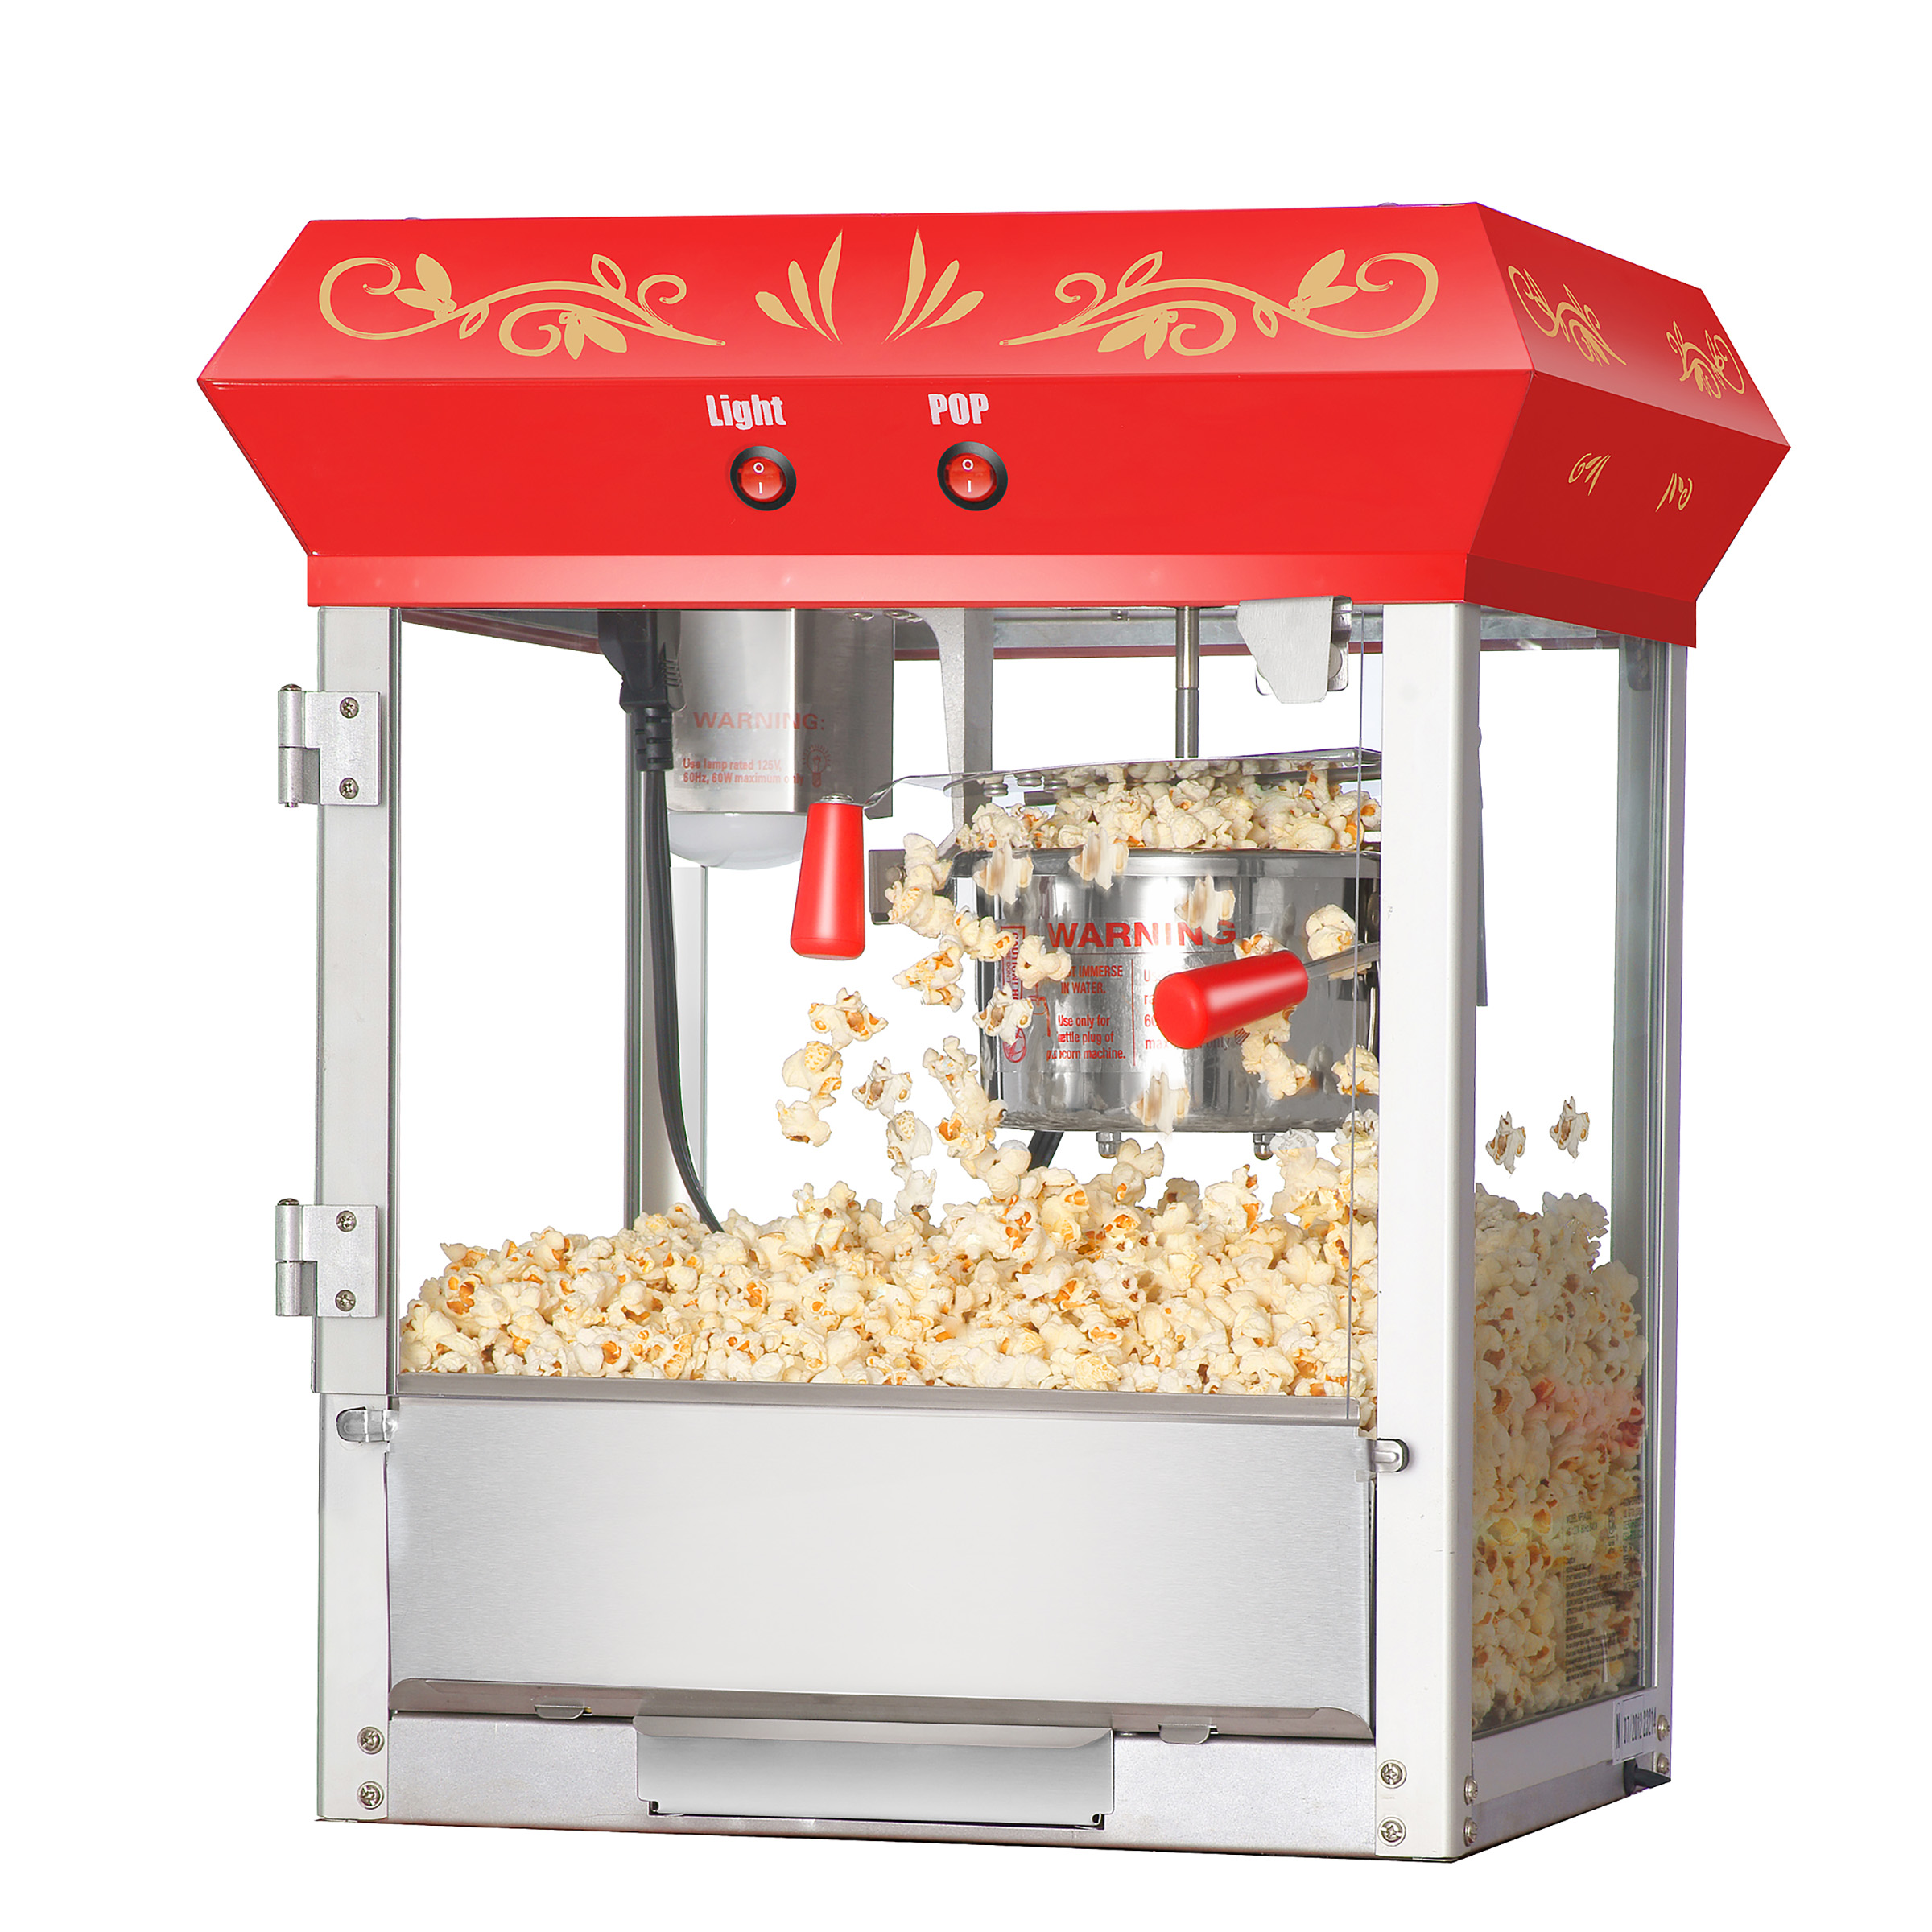 Foundation Top Popcorn Popper Machine, 4 Ounce by Great Northern Popcorn